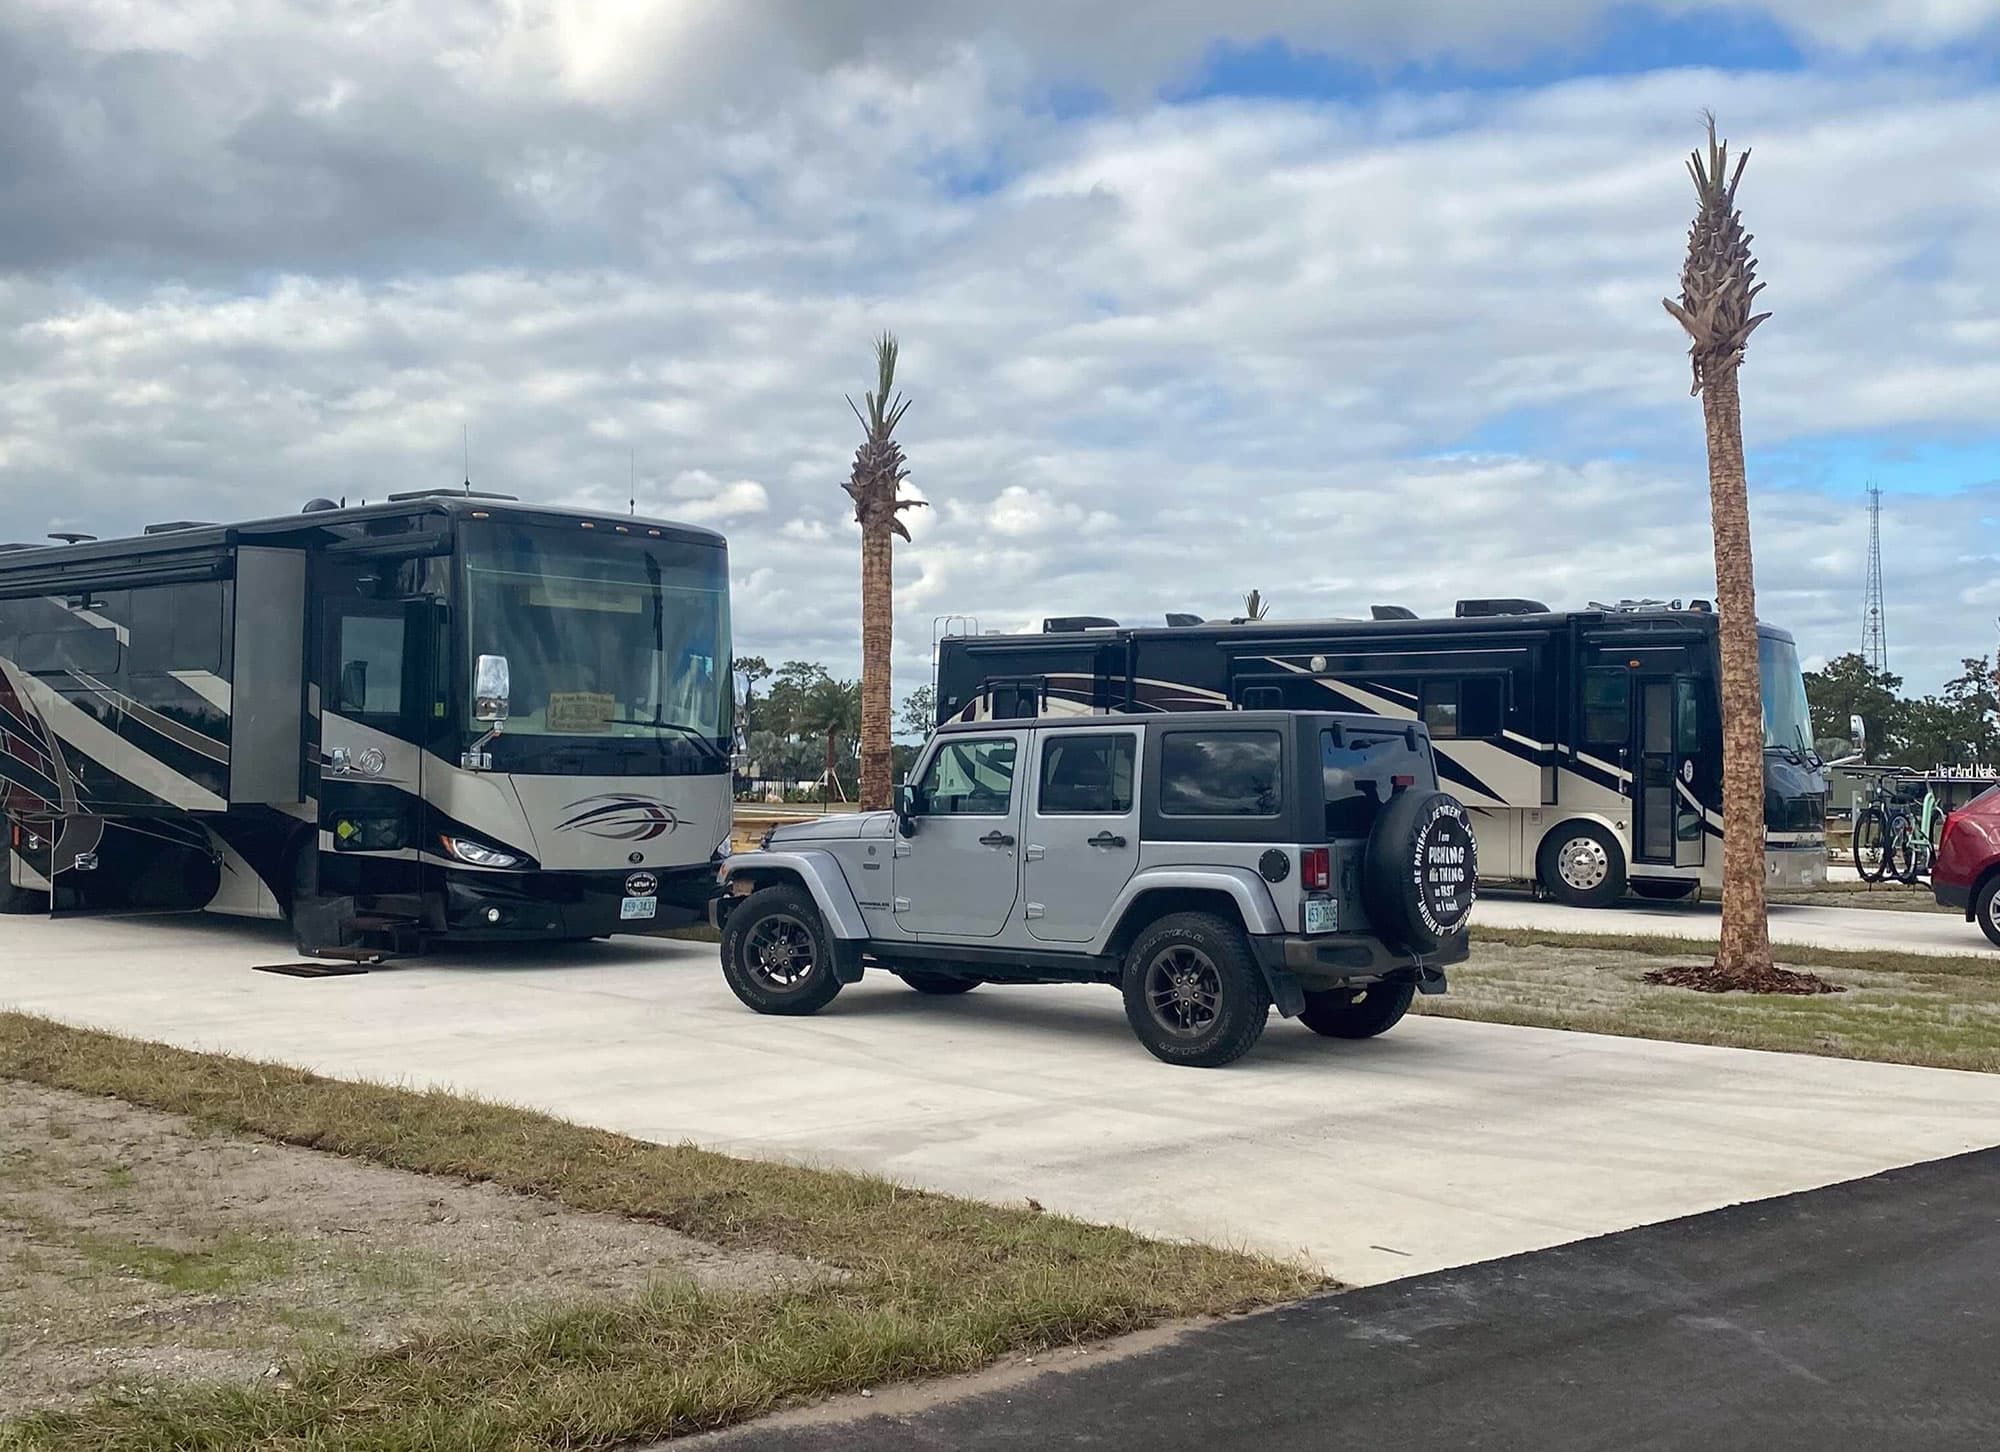 2 motorhomes and personal vehicles parked in oversized RV sites at Resort at Canopy Oaks in Lake Wales FL